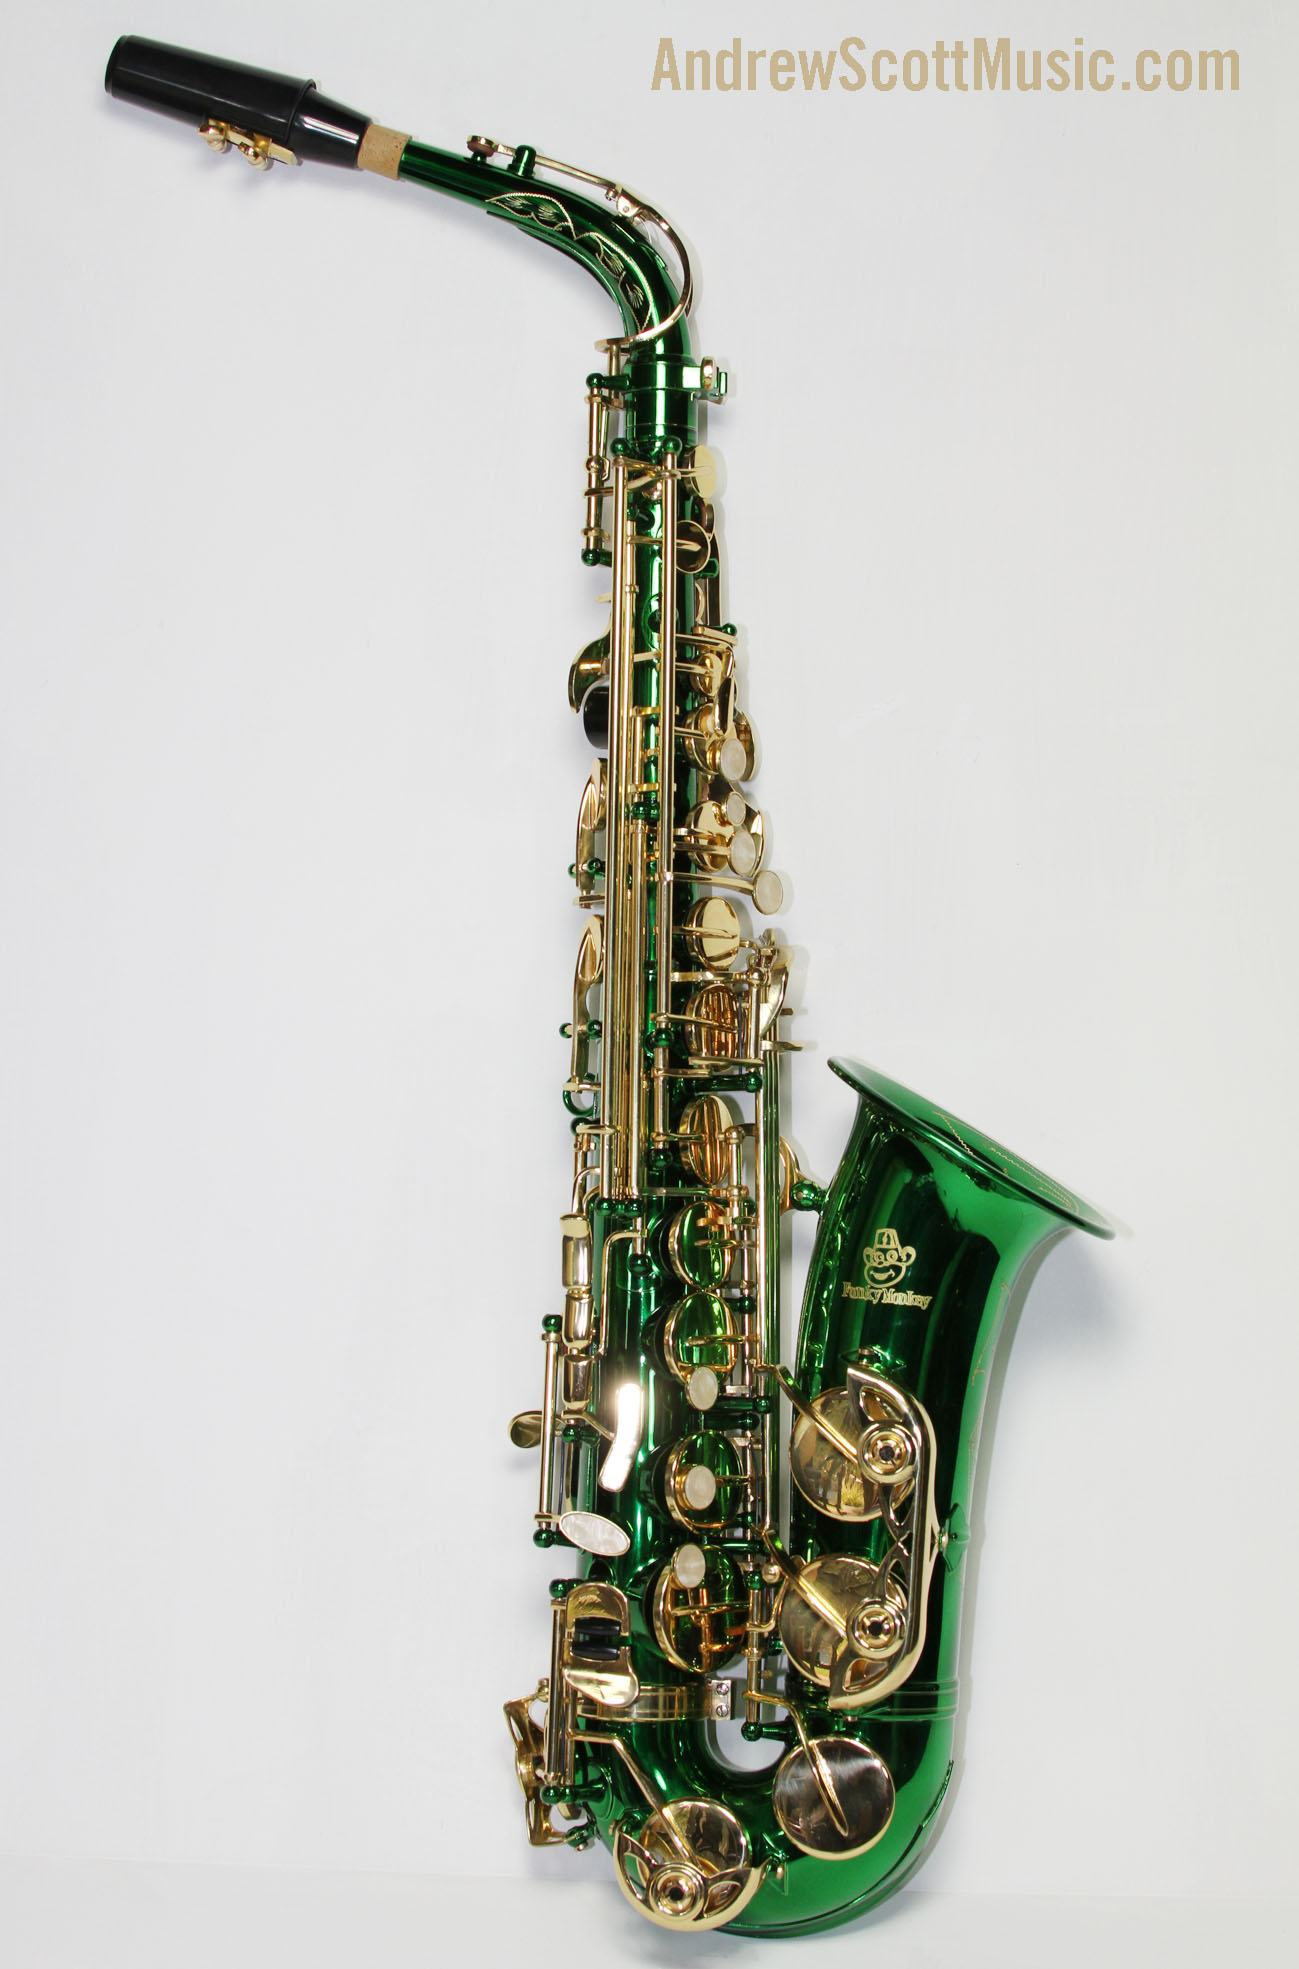 New Green Alto Saxophone in Case - Masterpiece | eBay